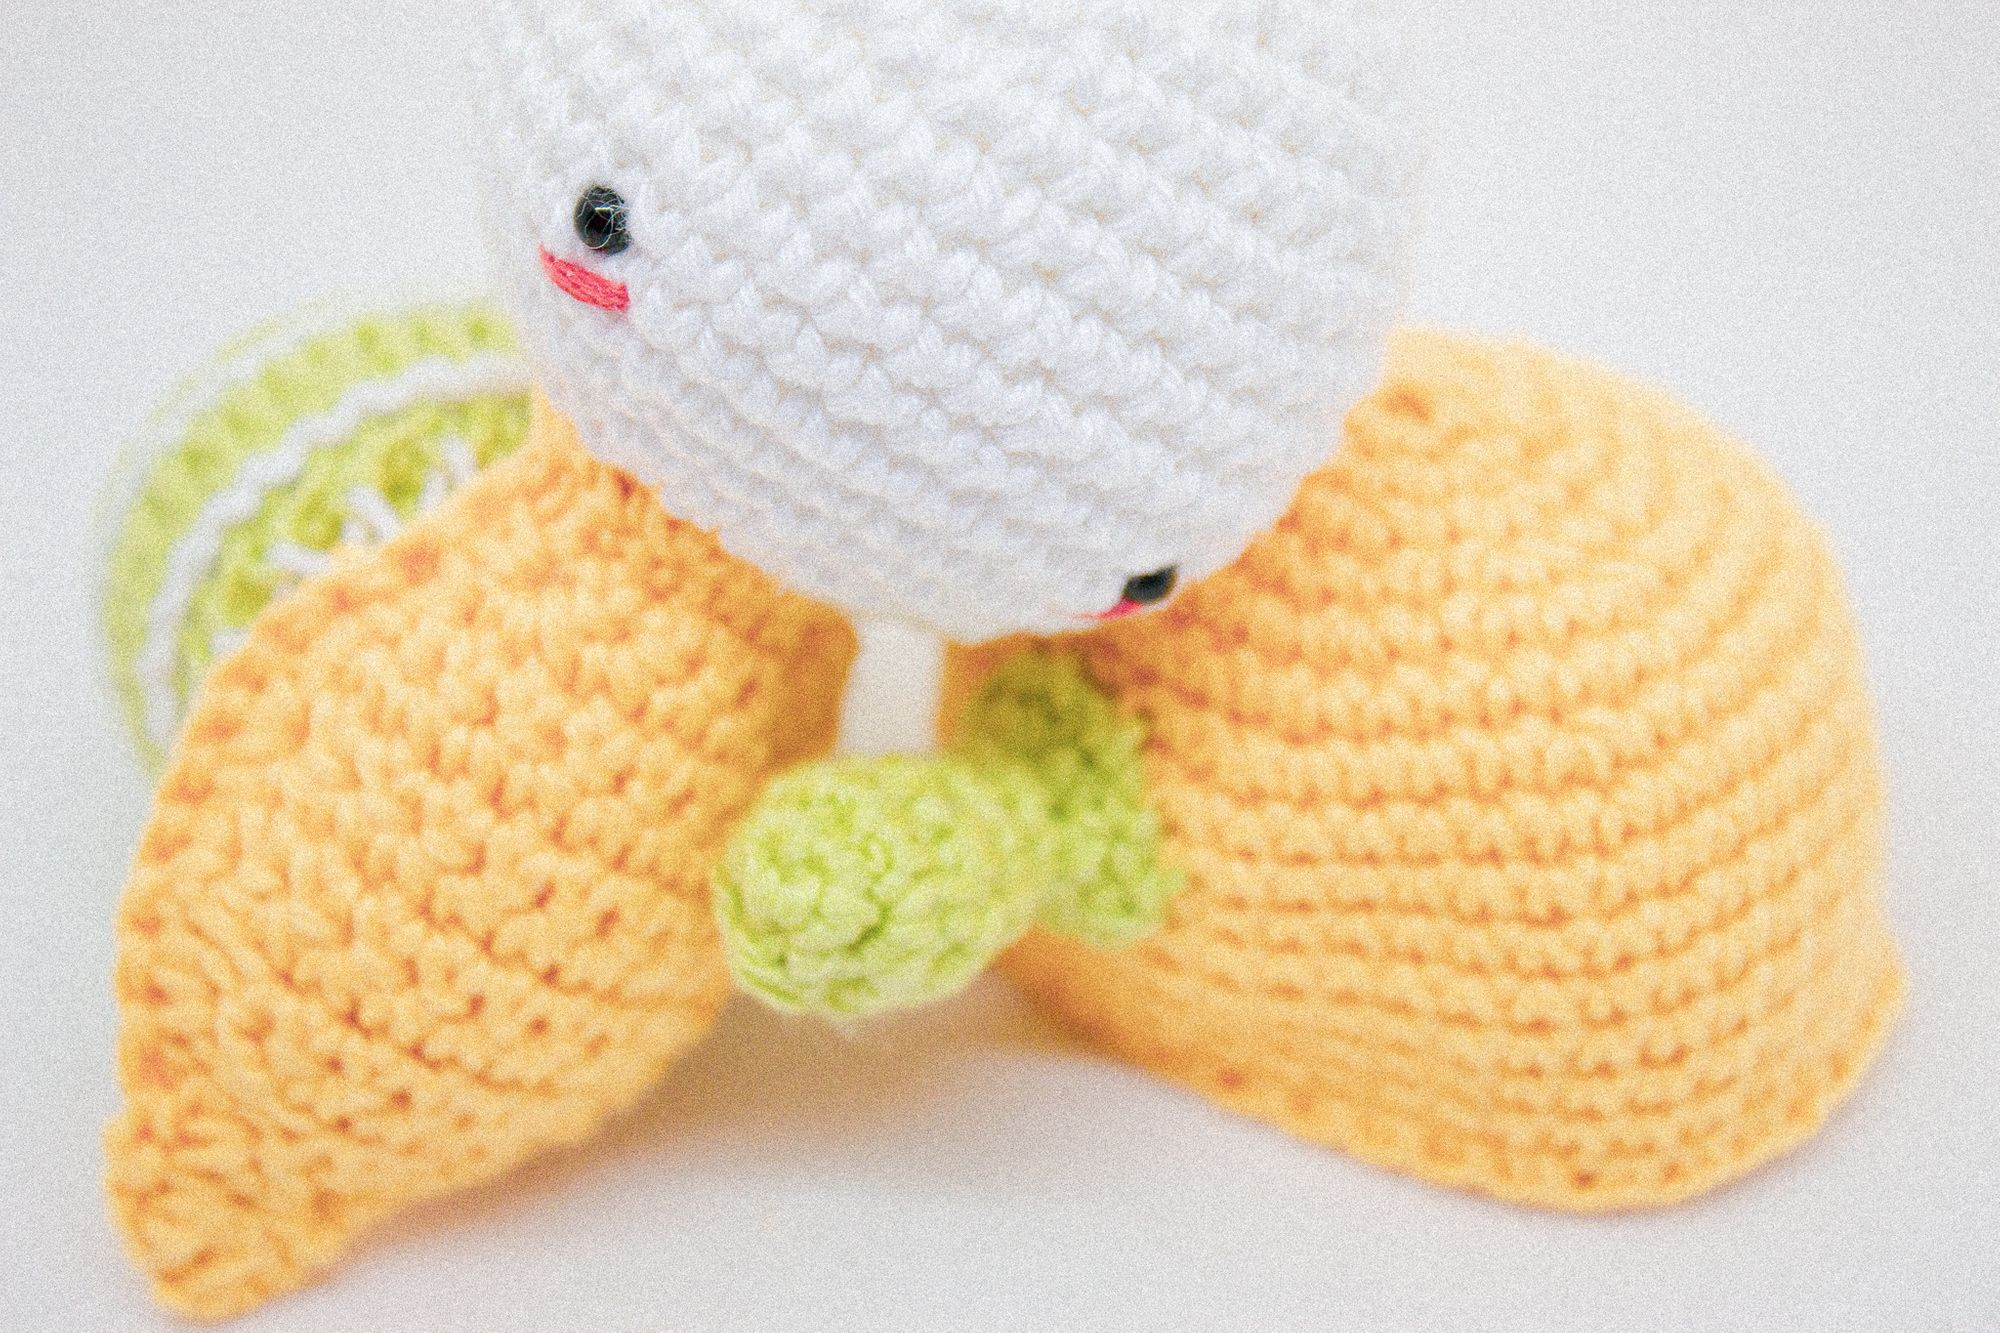 🤩HANDMADE Rattle Toy - now available to Purchase in my store in a variety of Colours.  😍SHAKE ITS SHELLED BACK TO HEAR THE RATTLE😍  CLICK ON MY PROFILE PAGE for more details. #invitationtoplay #newmums #nurseryroom  #babytoys #babyshowergifts #mydaughter #myson #lovecrochet #crochetaddict #gardencreatures #yarnaddict #shopsmall #handmade #babytoy #babygift #craftlifehappylife #rattle #etsyshopowner #shoplocal i #toddlertoys #playactivities #creatures #rattletoy #handmadetoy #stuffedtoy